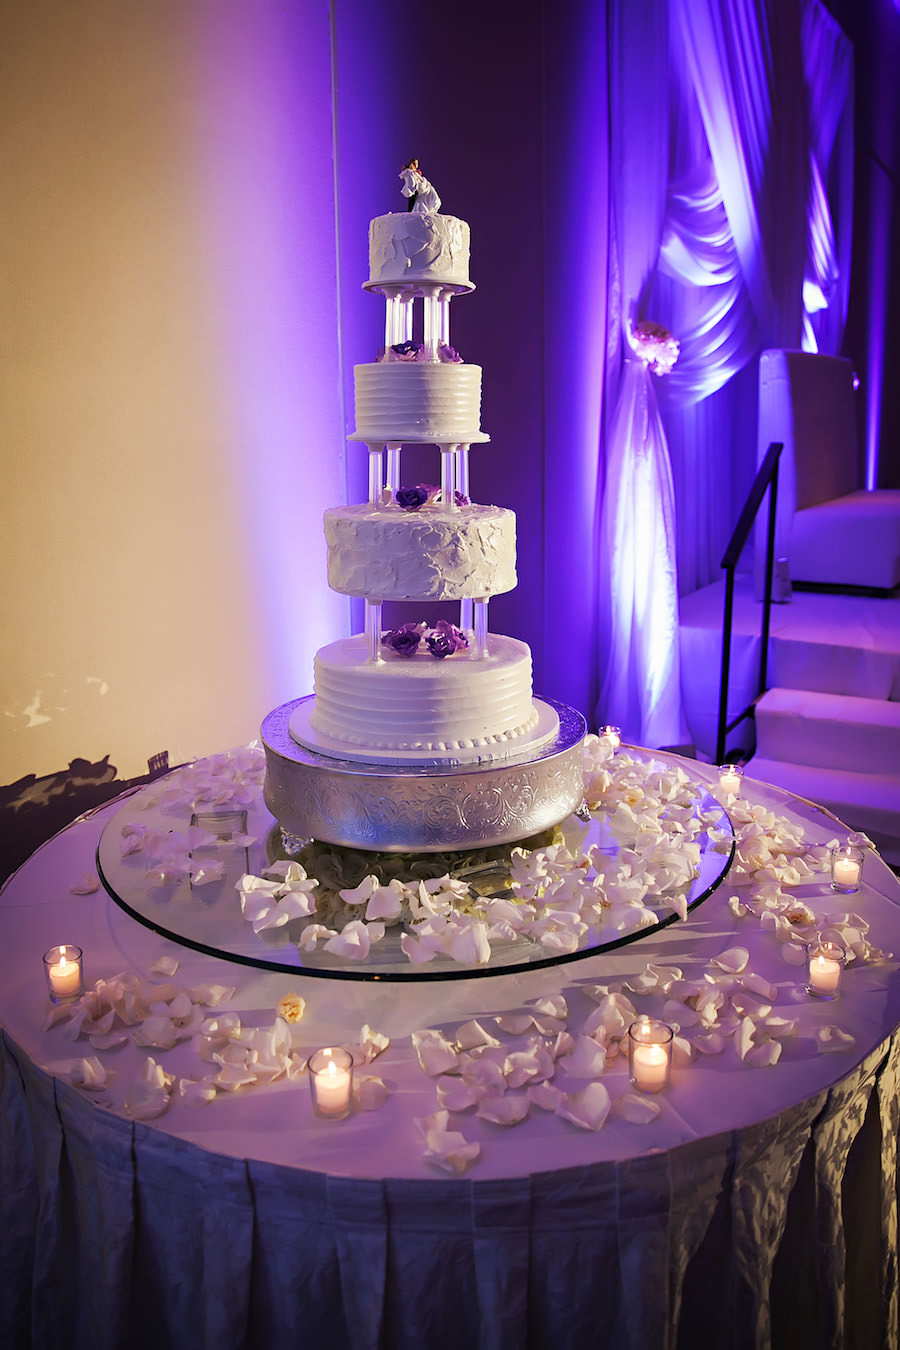 Four Tiered, Round, White Wedding Cake with White Rose Petal Accents